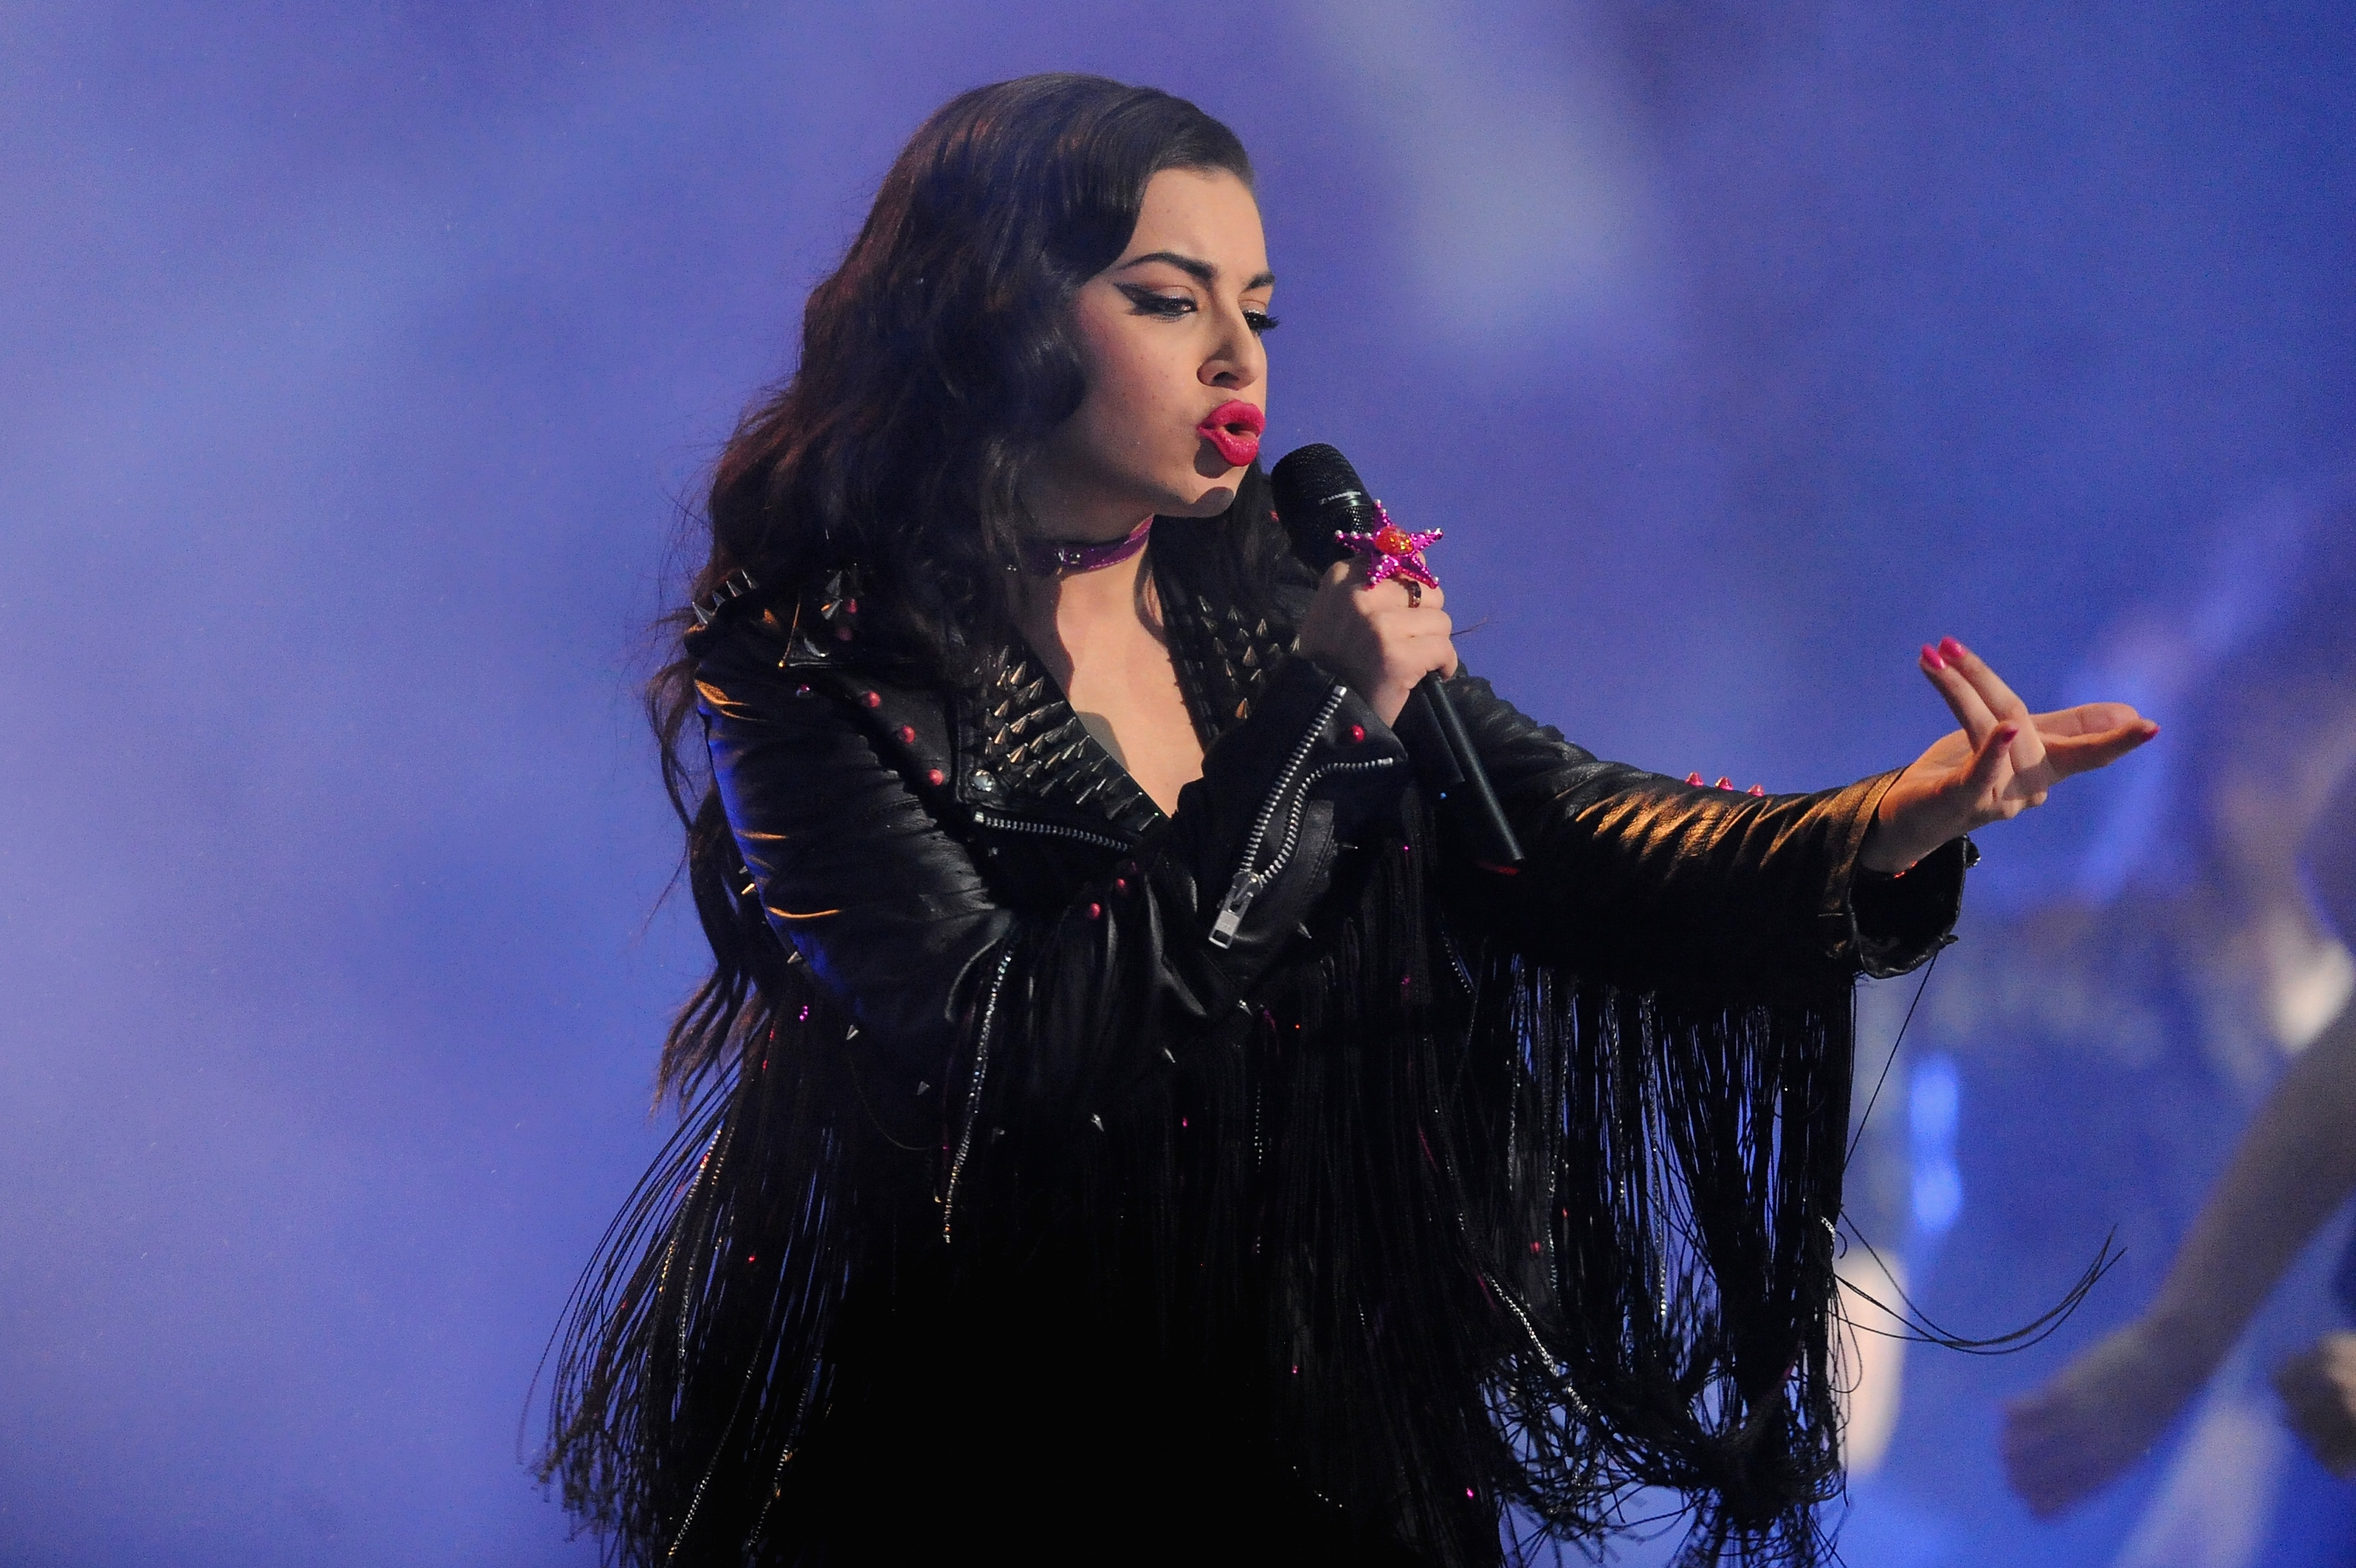 Charli XCX performs on stage during the MTV EMA's 2014 at The Hydro on November 9, 2014 in Glasgow, Scotland.